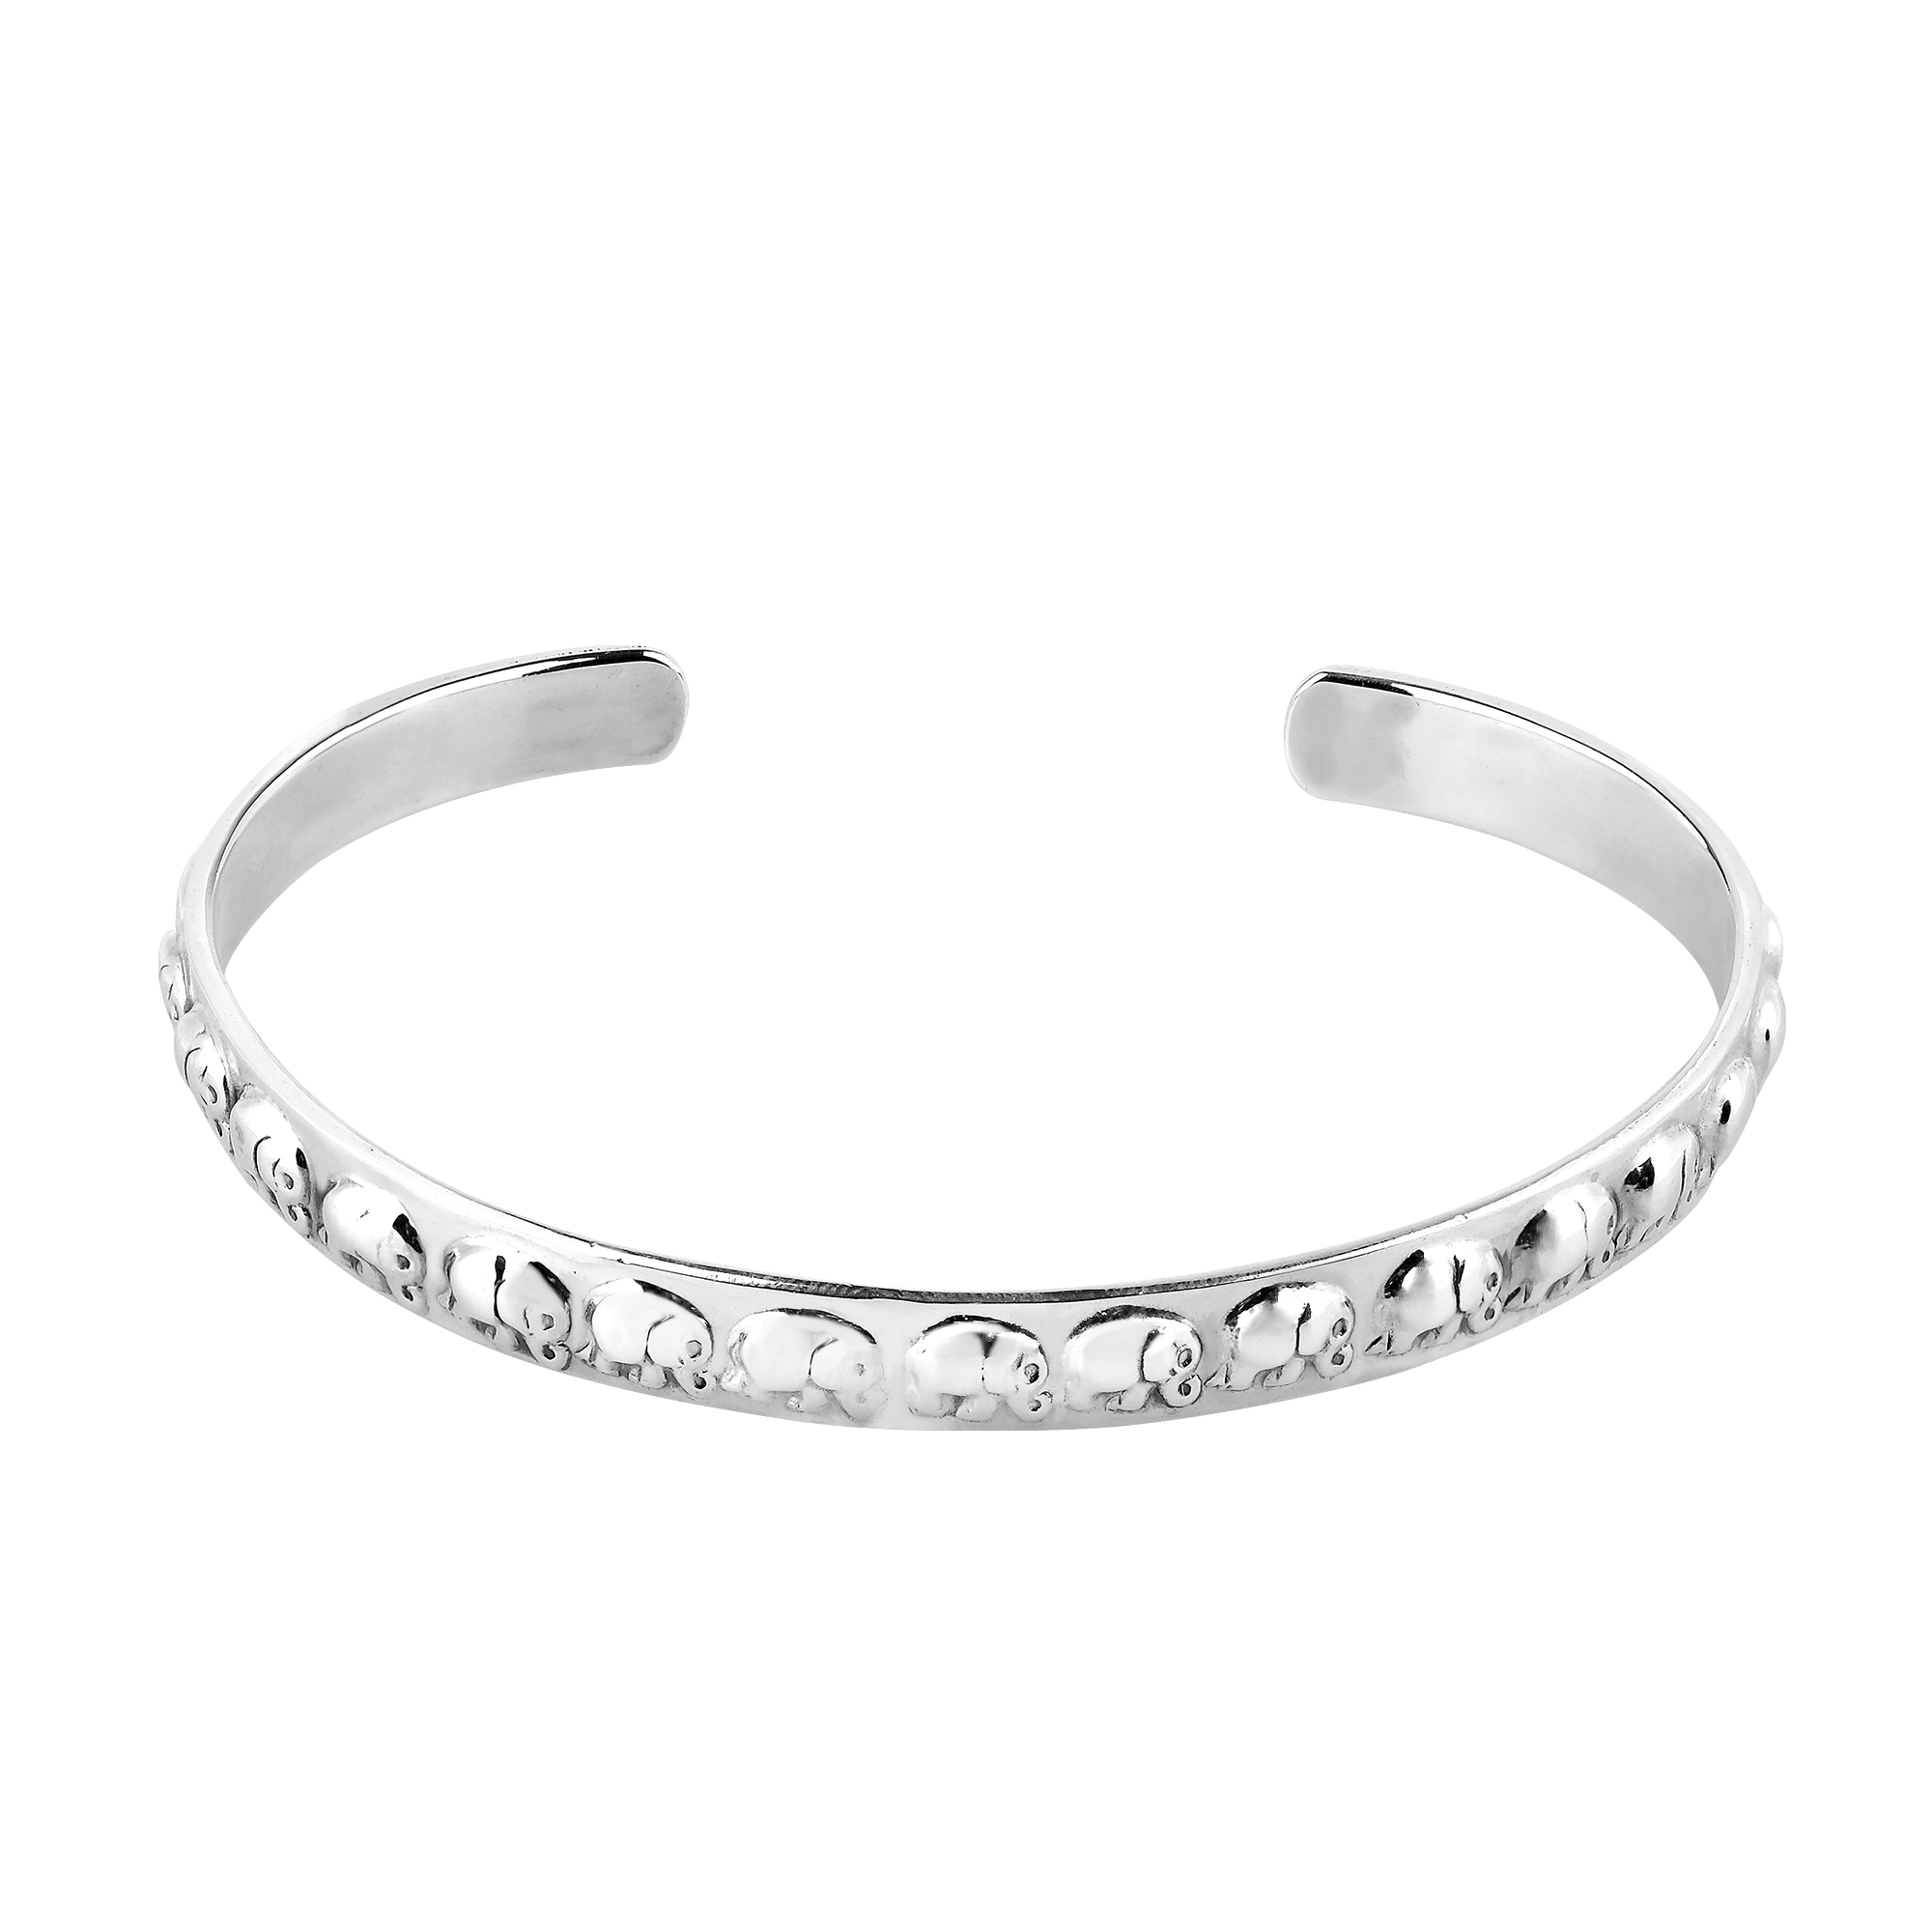 polish bangle today free jewelry bangles bracelets plain circumference womens high indonesia design in bracelet watches sterling silver moonlight product shipping inner balinese